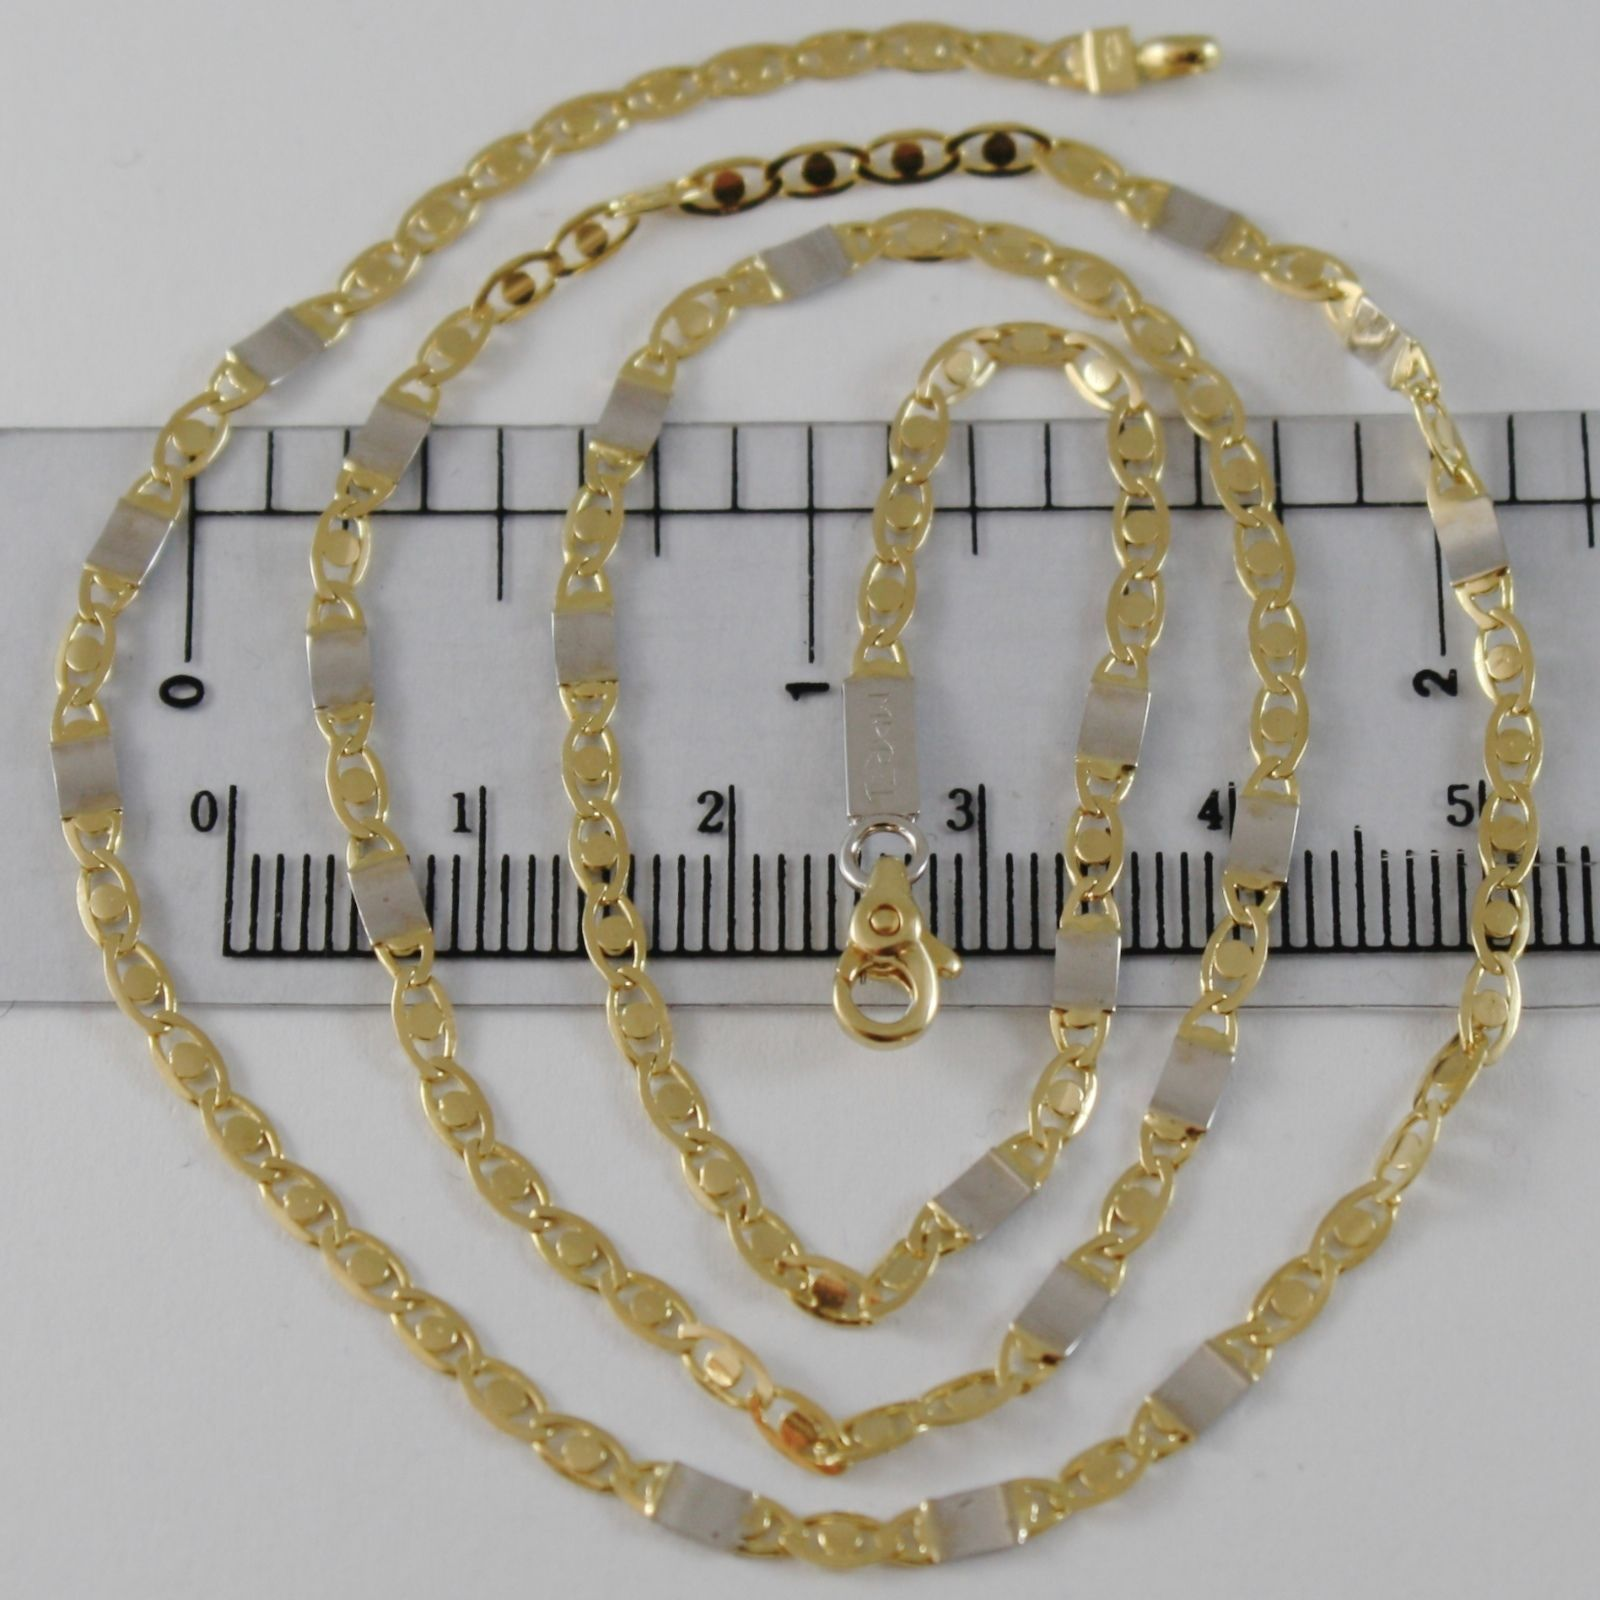 SOLID 18K WHITE & YELLOW GOLD CHAIN, OVAL PLATES LINK 19.68 IN. MADE IN ITALY